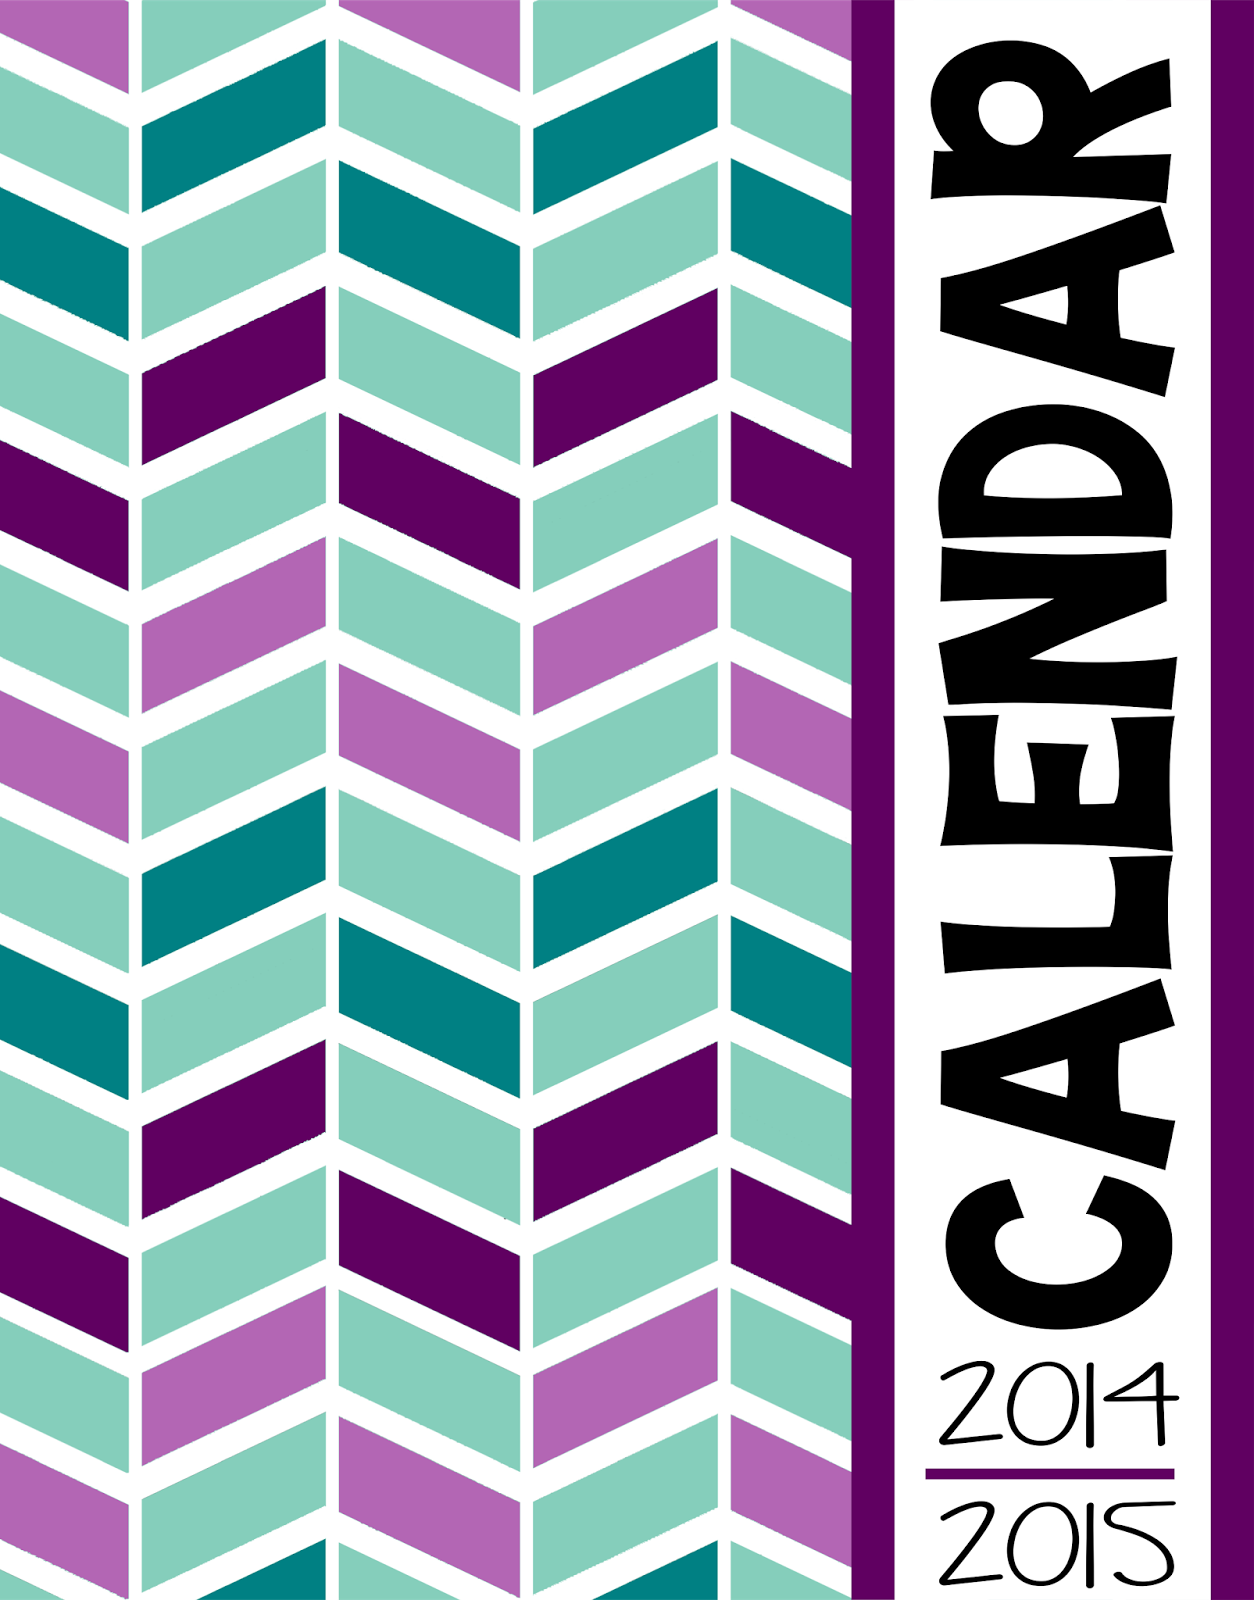 www.teacherspayteachers.com/Product/Teacher-Binder-2014-2015-Editable-Teal-and-Purple-1261030